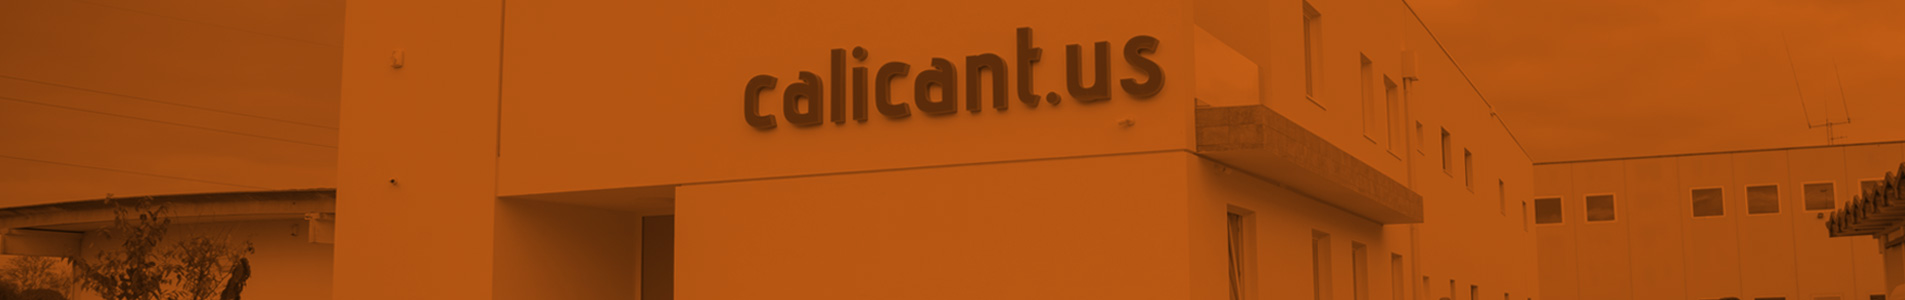 Ricerca vocale e e-commerce - Calicant.us Blog | calicant.us